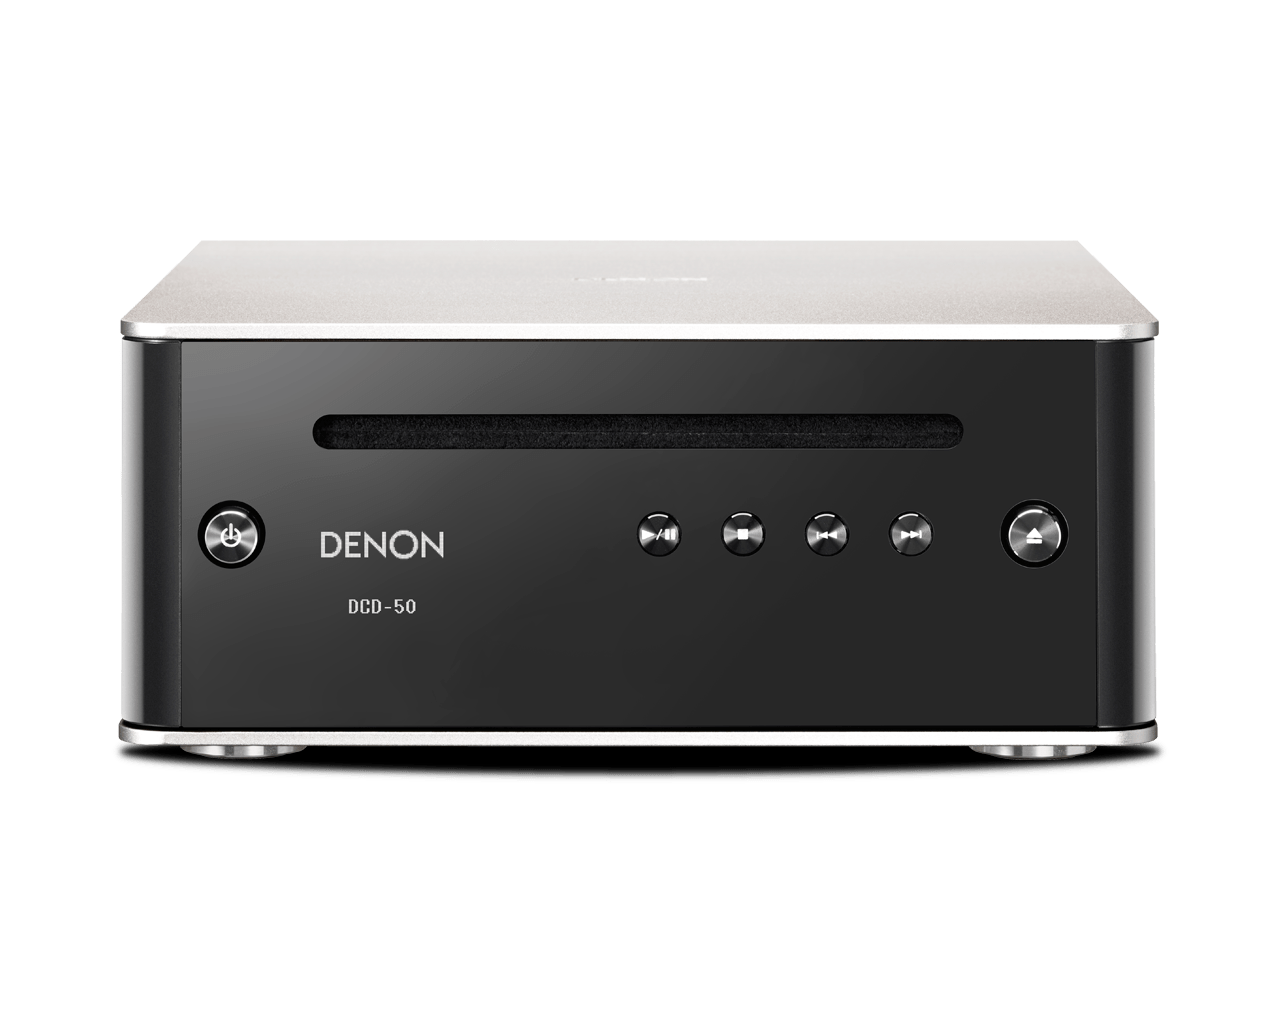 Denon DCD-50 CD-Player front